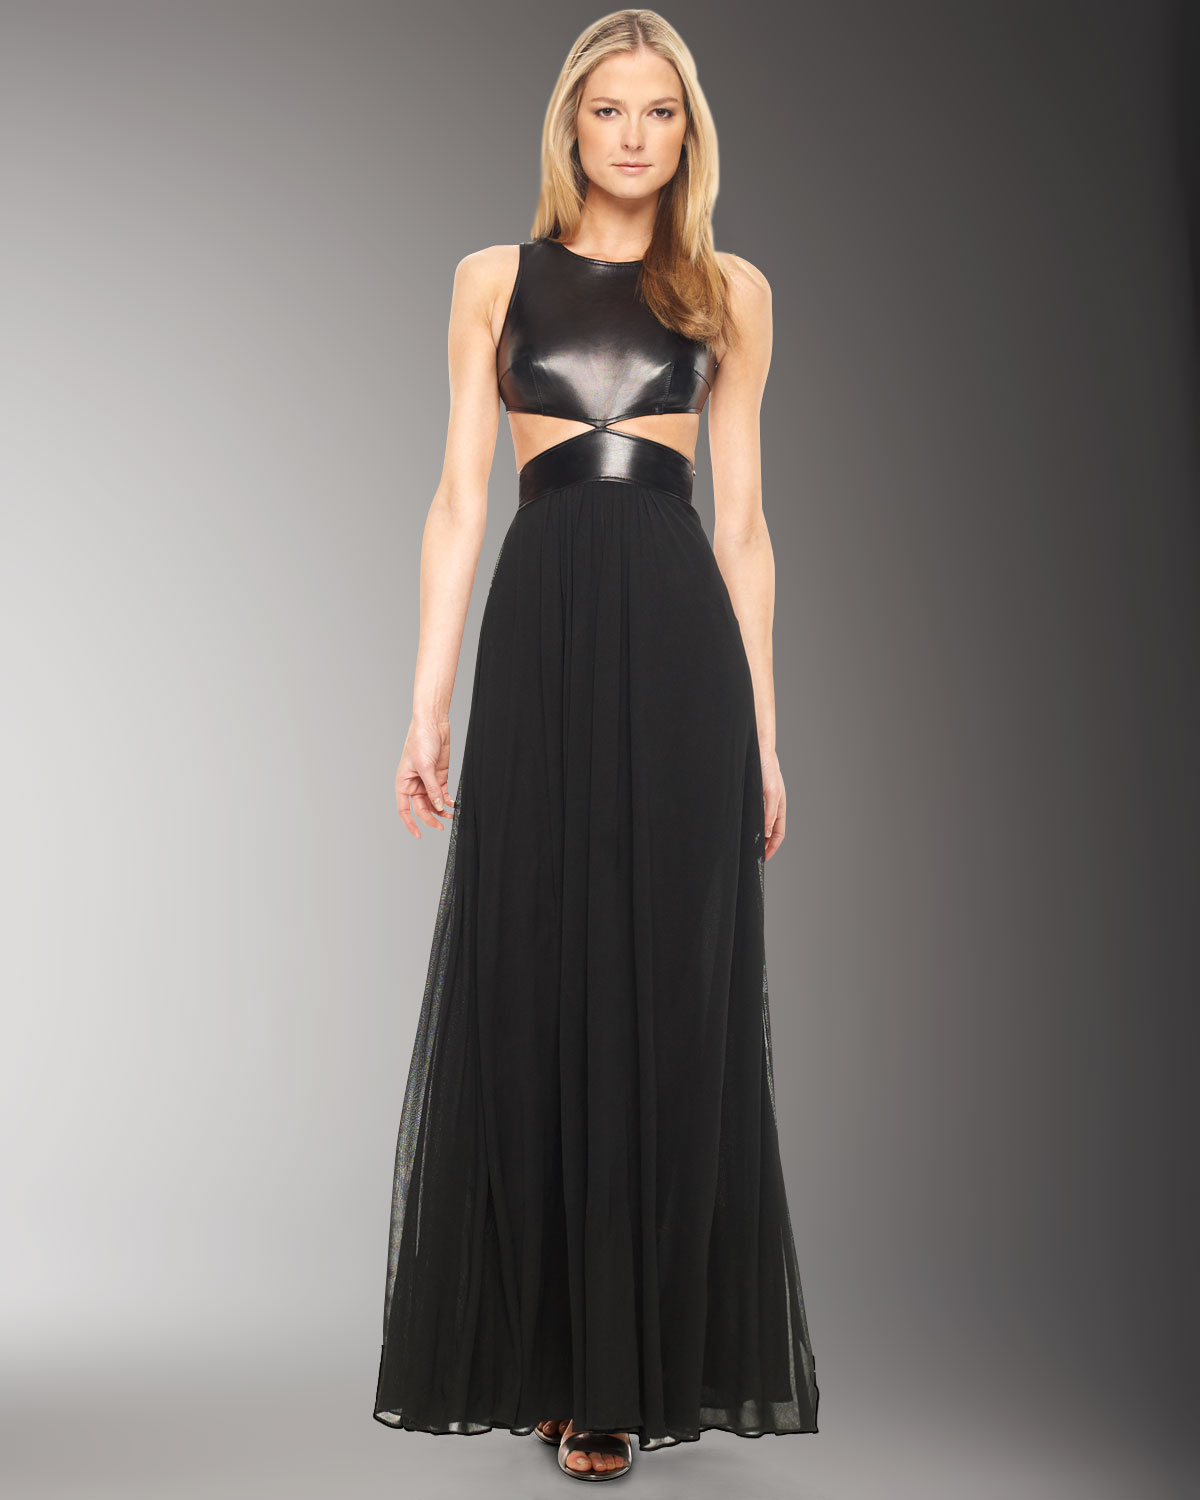 Lyst - Michael Kors Leather Bodice Gown in Black